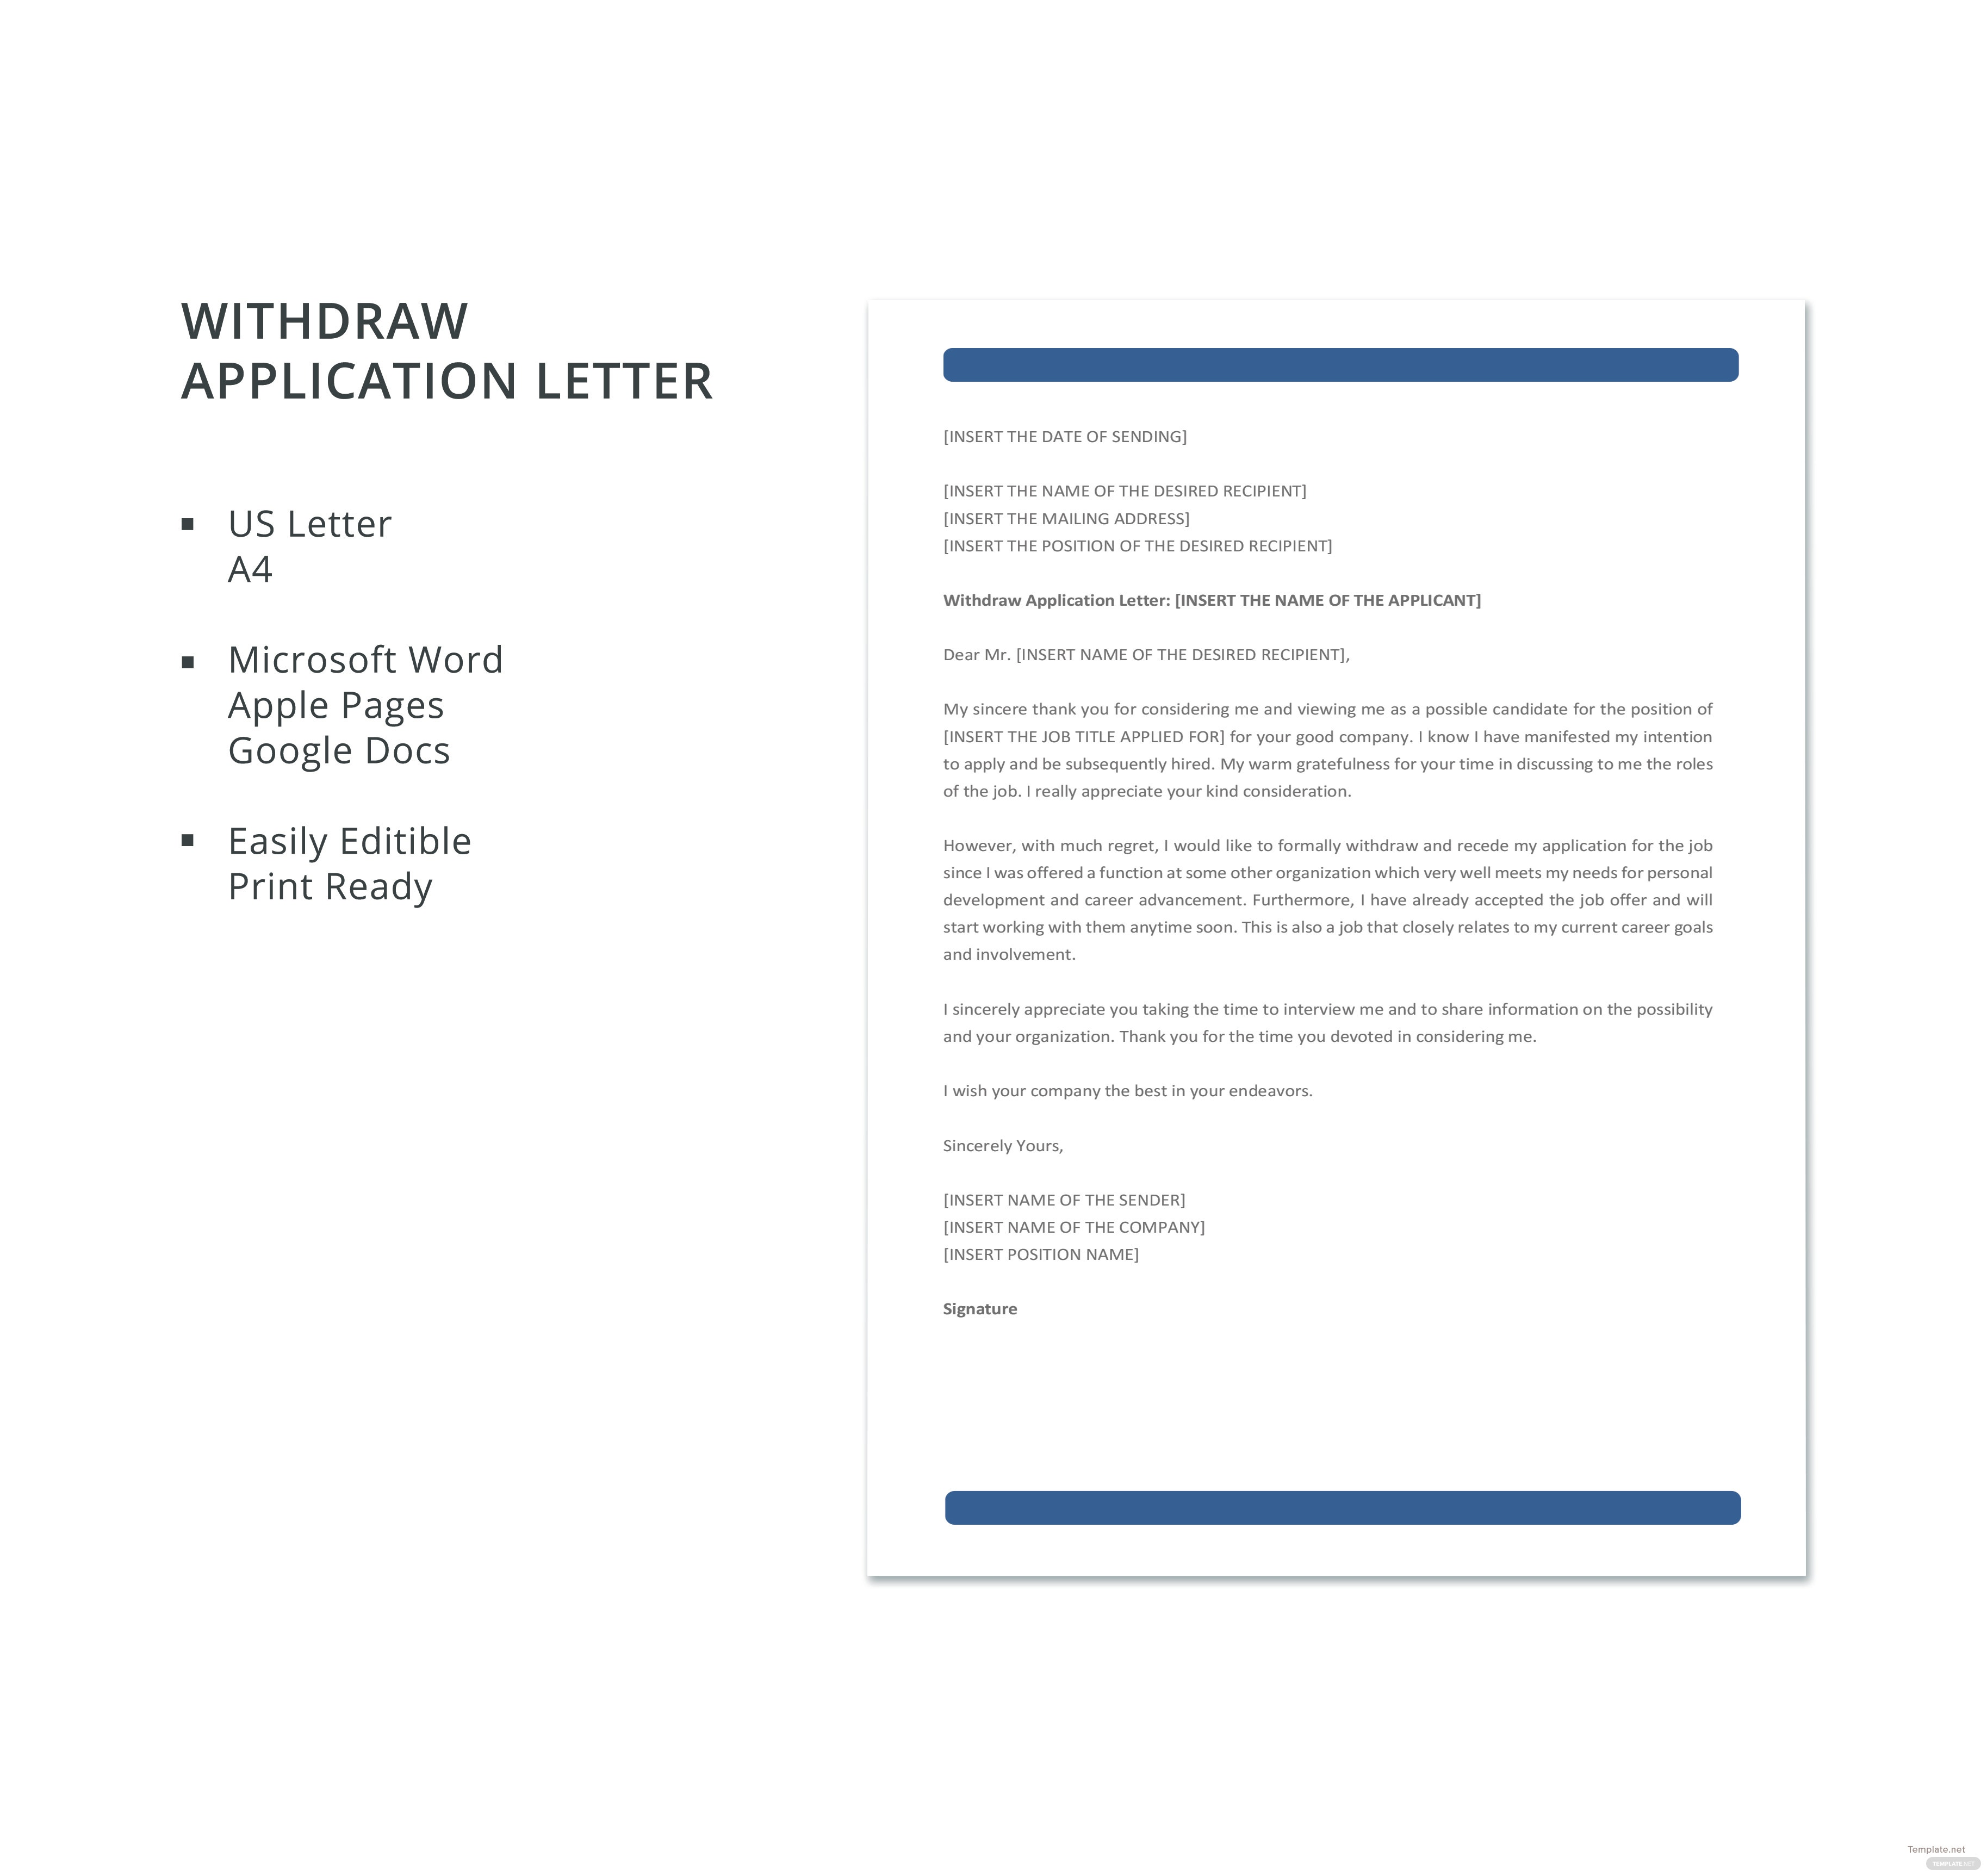 when to withdraw job application